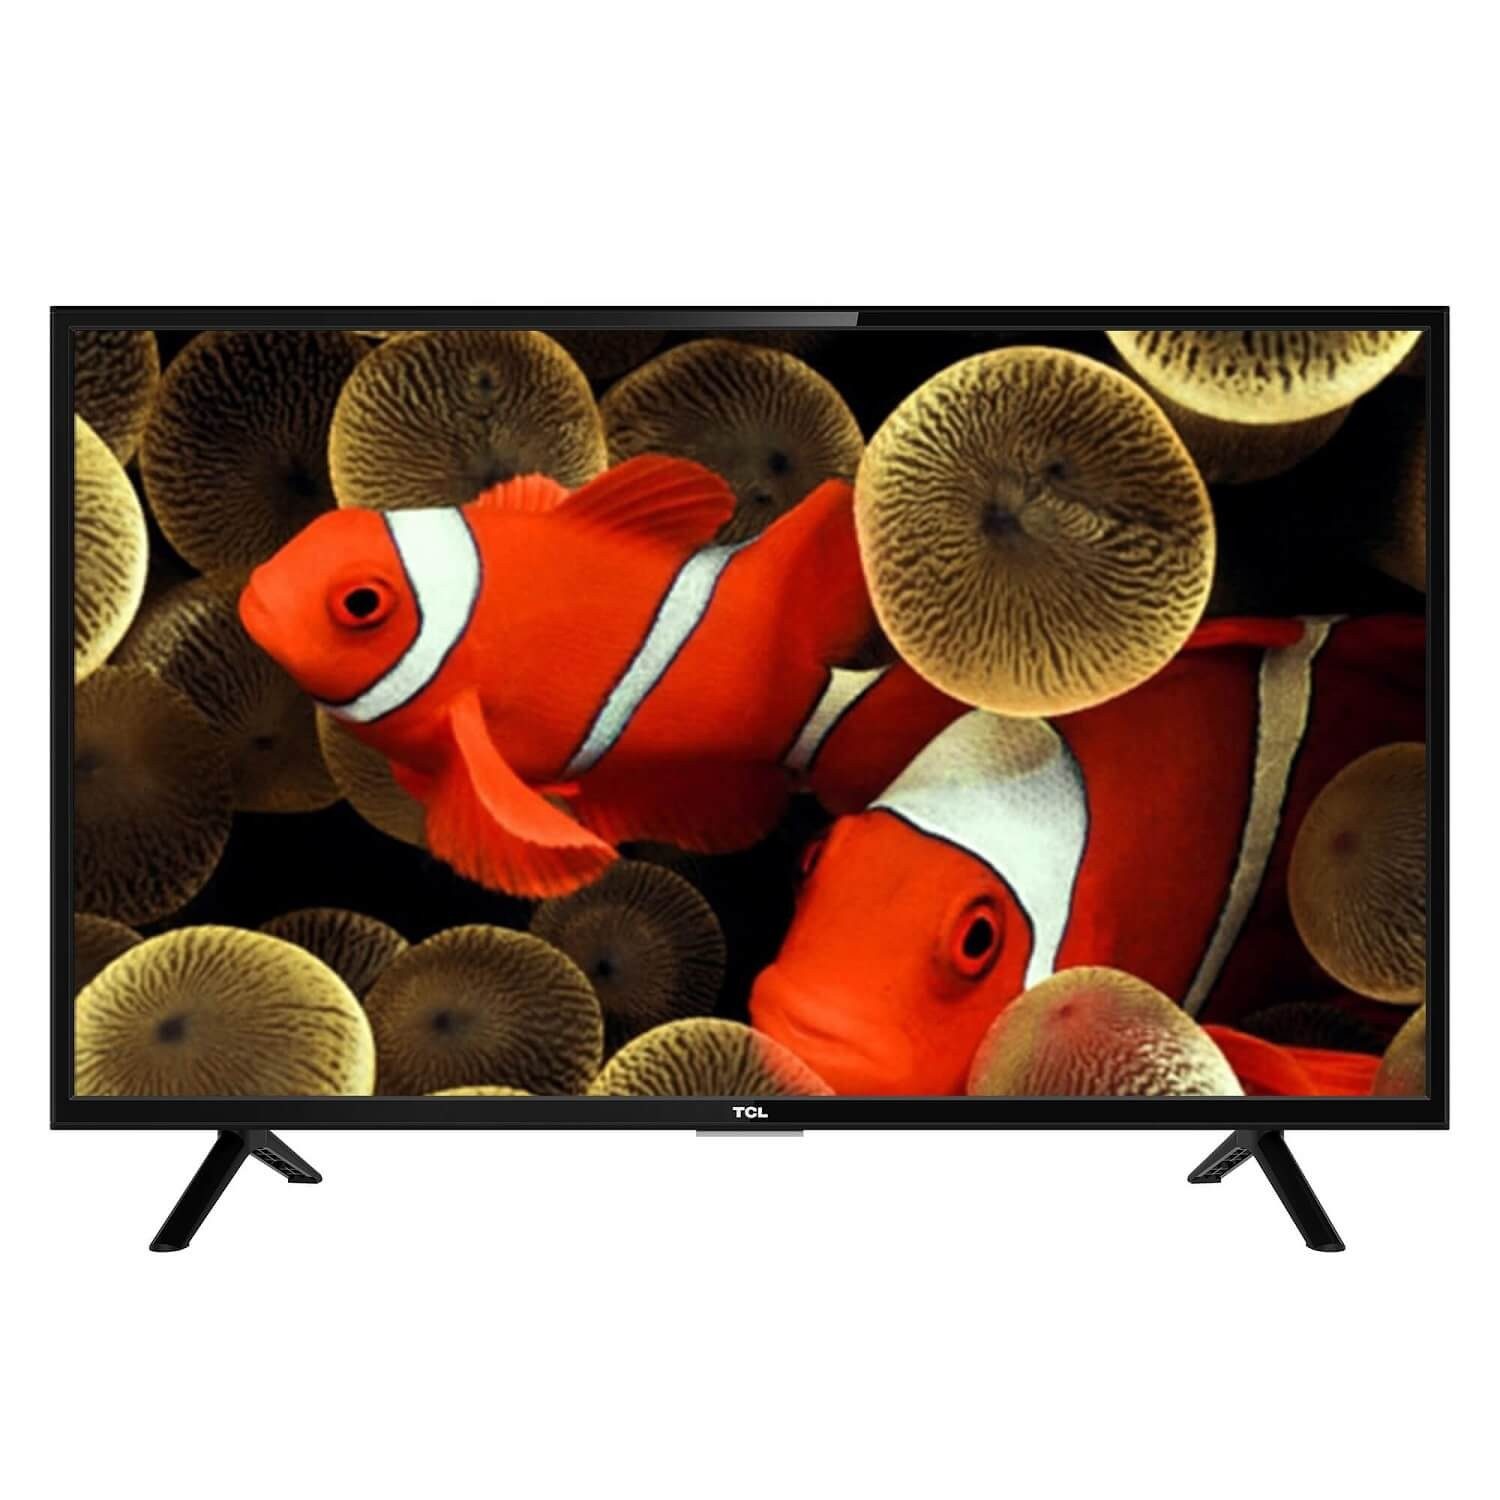 TCL 32-inch BASIC LED TV 1